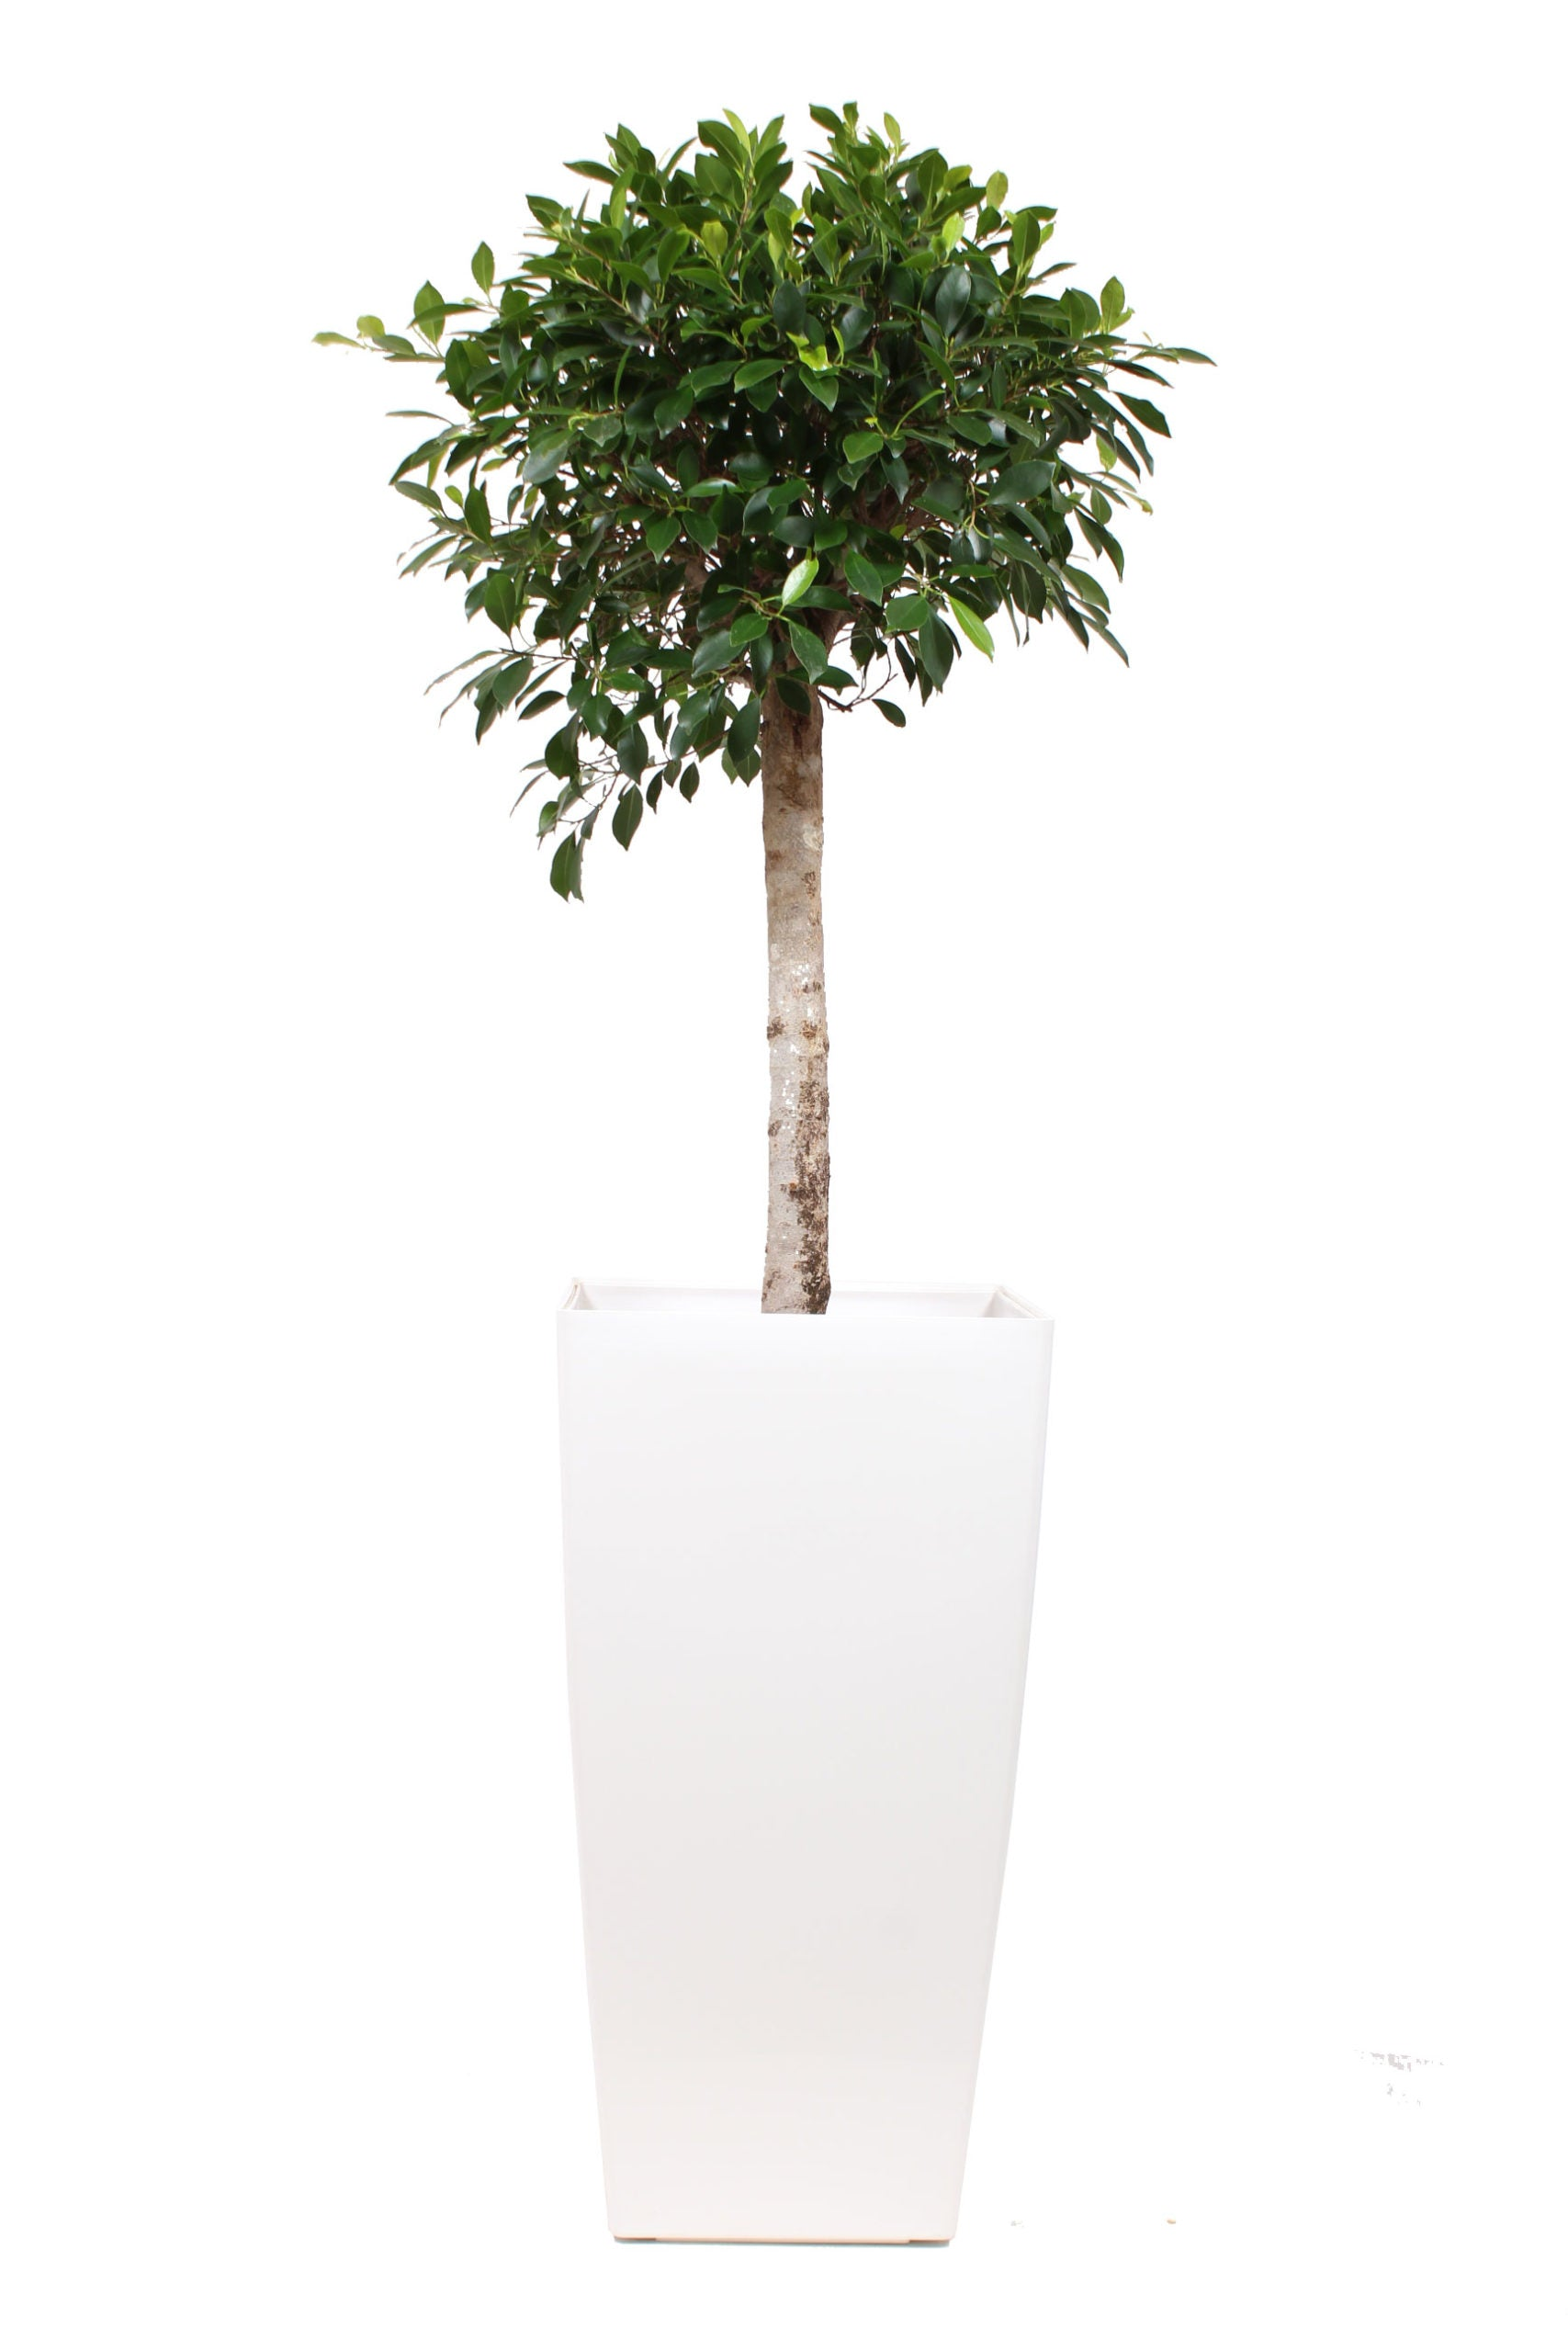 [NE en BE] Ficus Nitida in Piza pot semi-hydroculture White - Hoogte 180 - Diameter pot 40